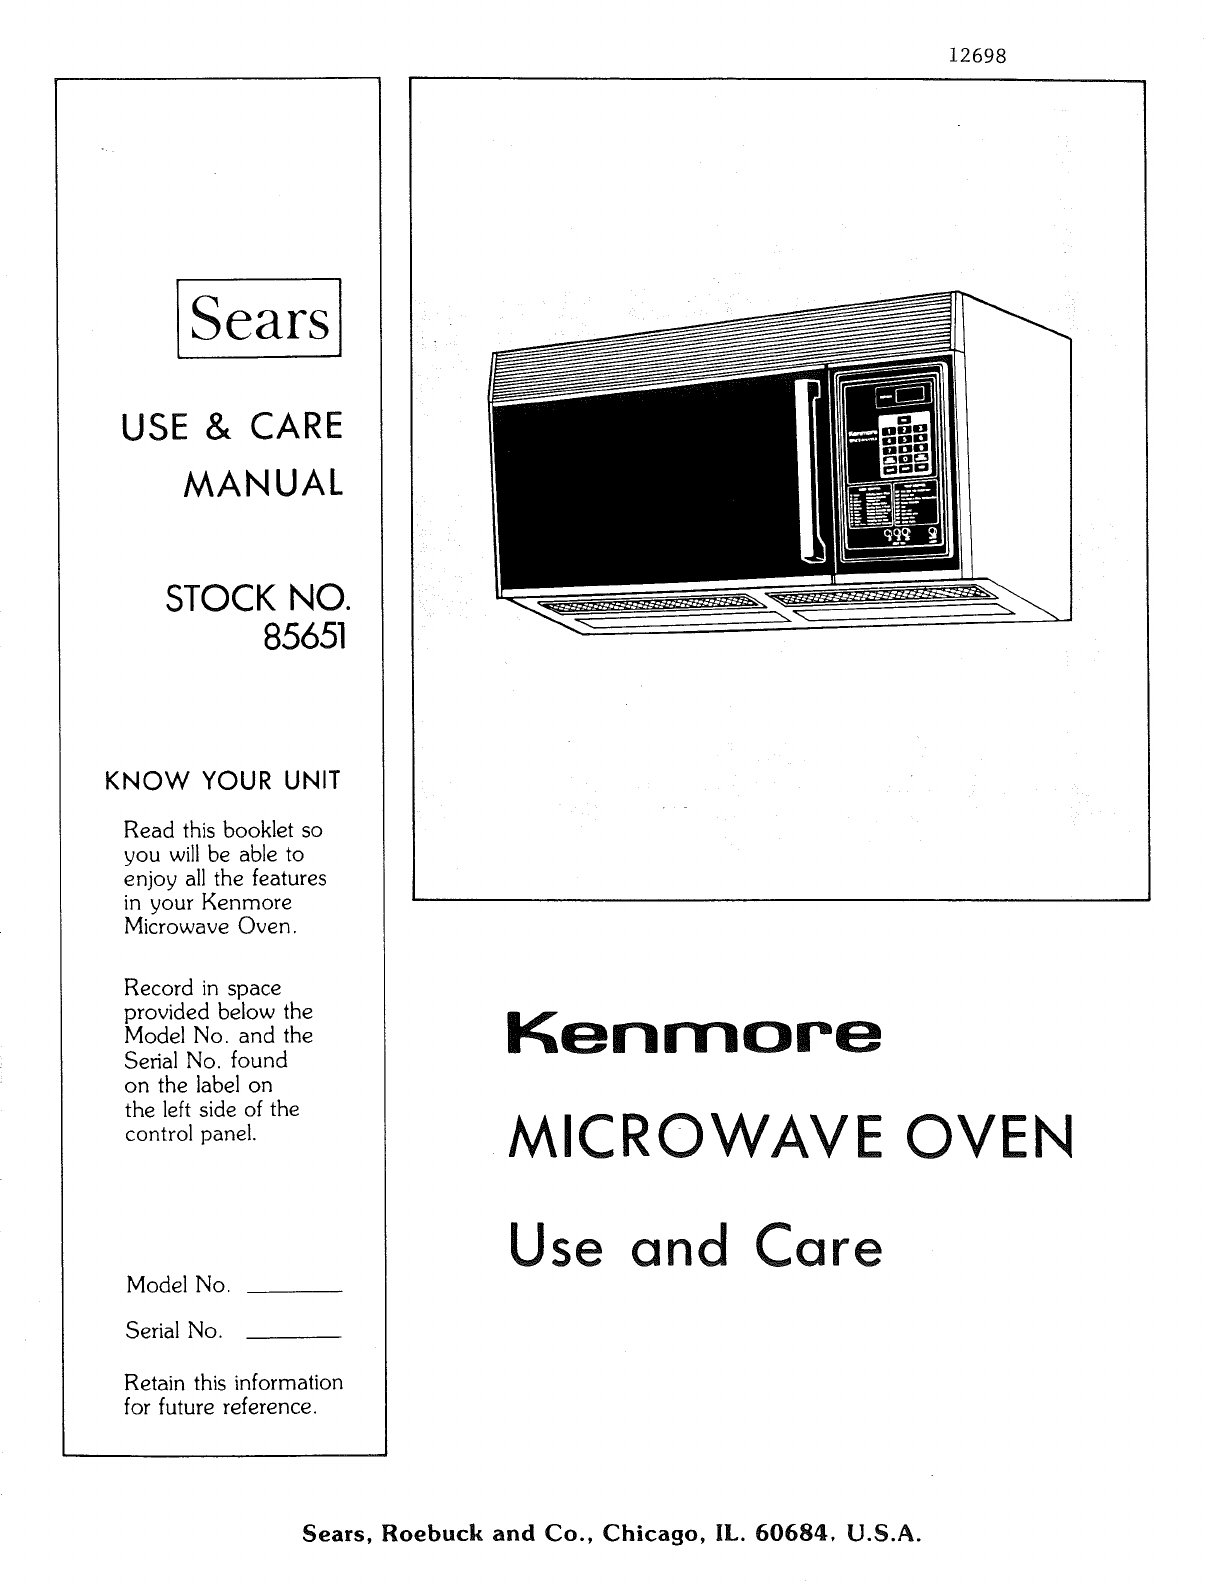 User Manual Microwave Oven Manuals